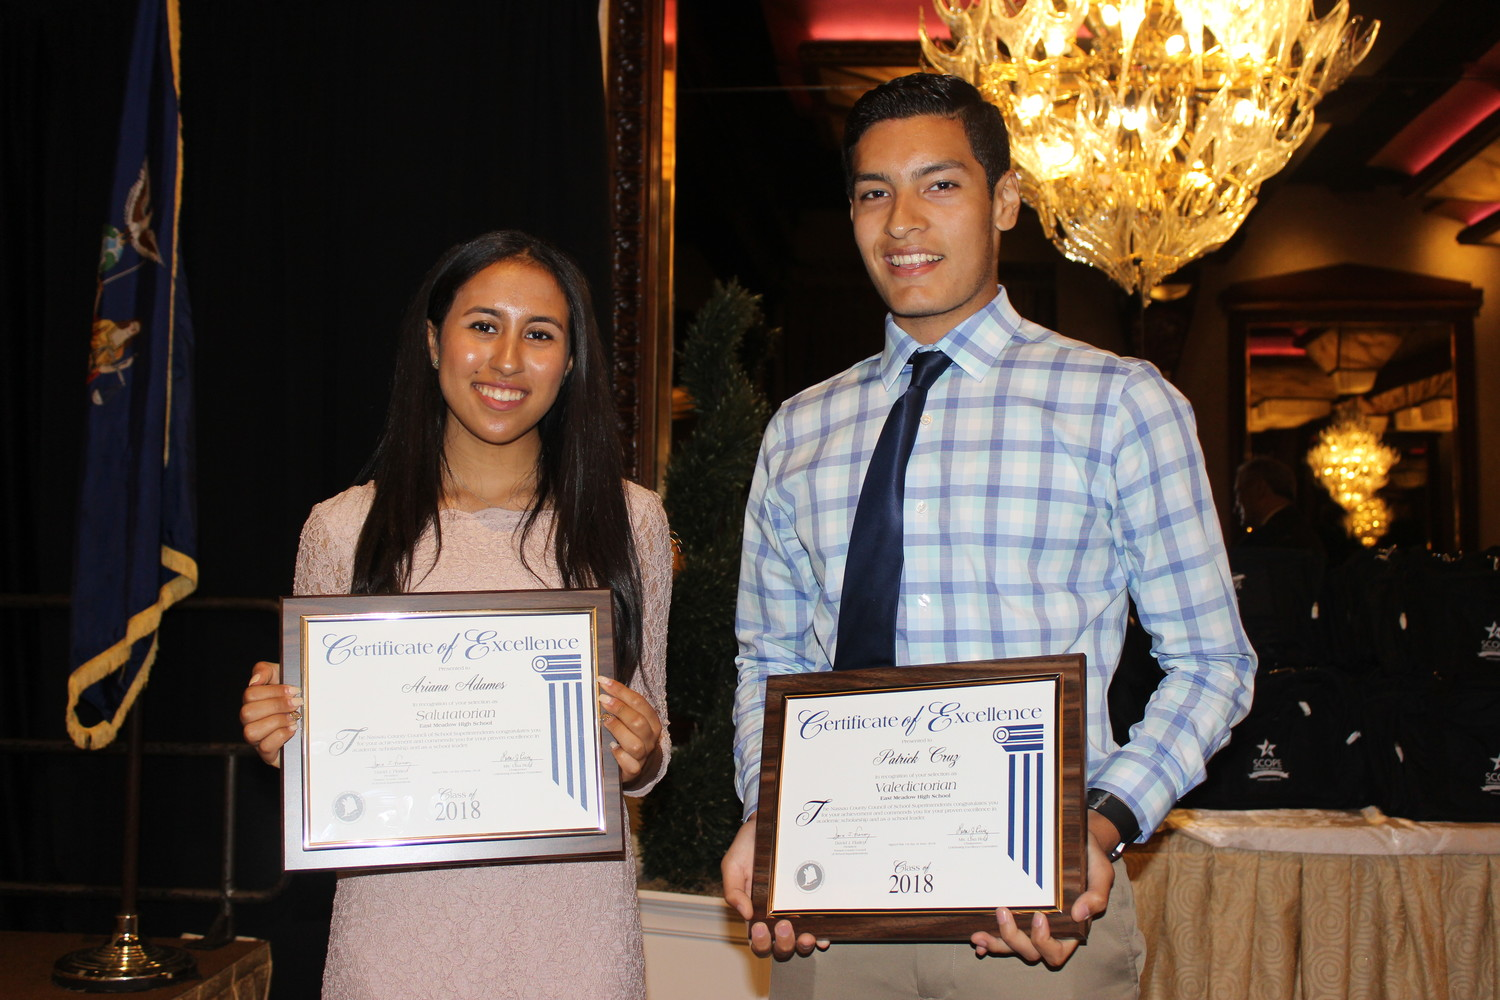 Ariana Adames, left, is this year's salutatorian at East Meadow High School and Patrick Cruz is this year's valedictorian.